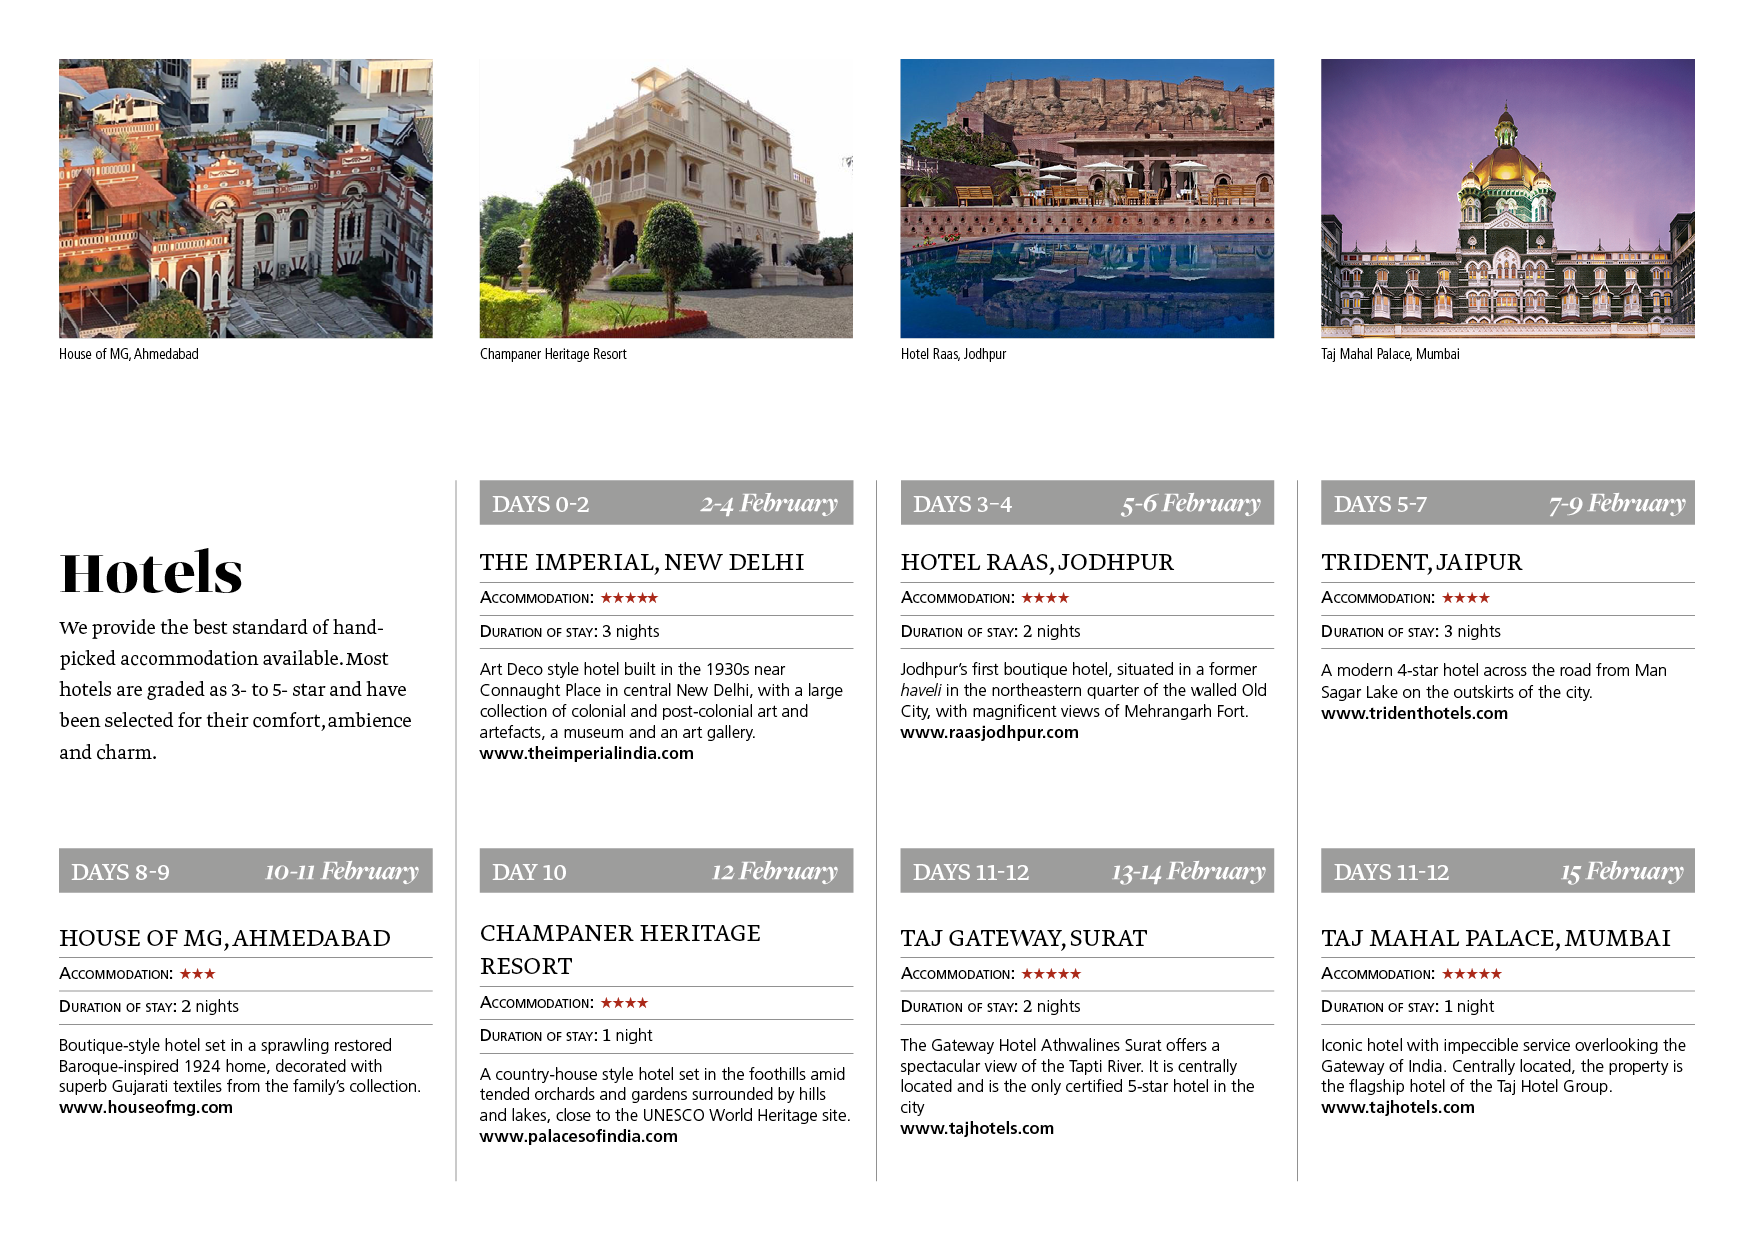 HALI_Tour_Brochure_India201810